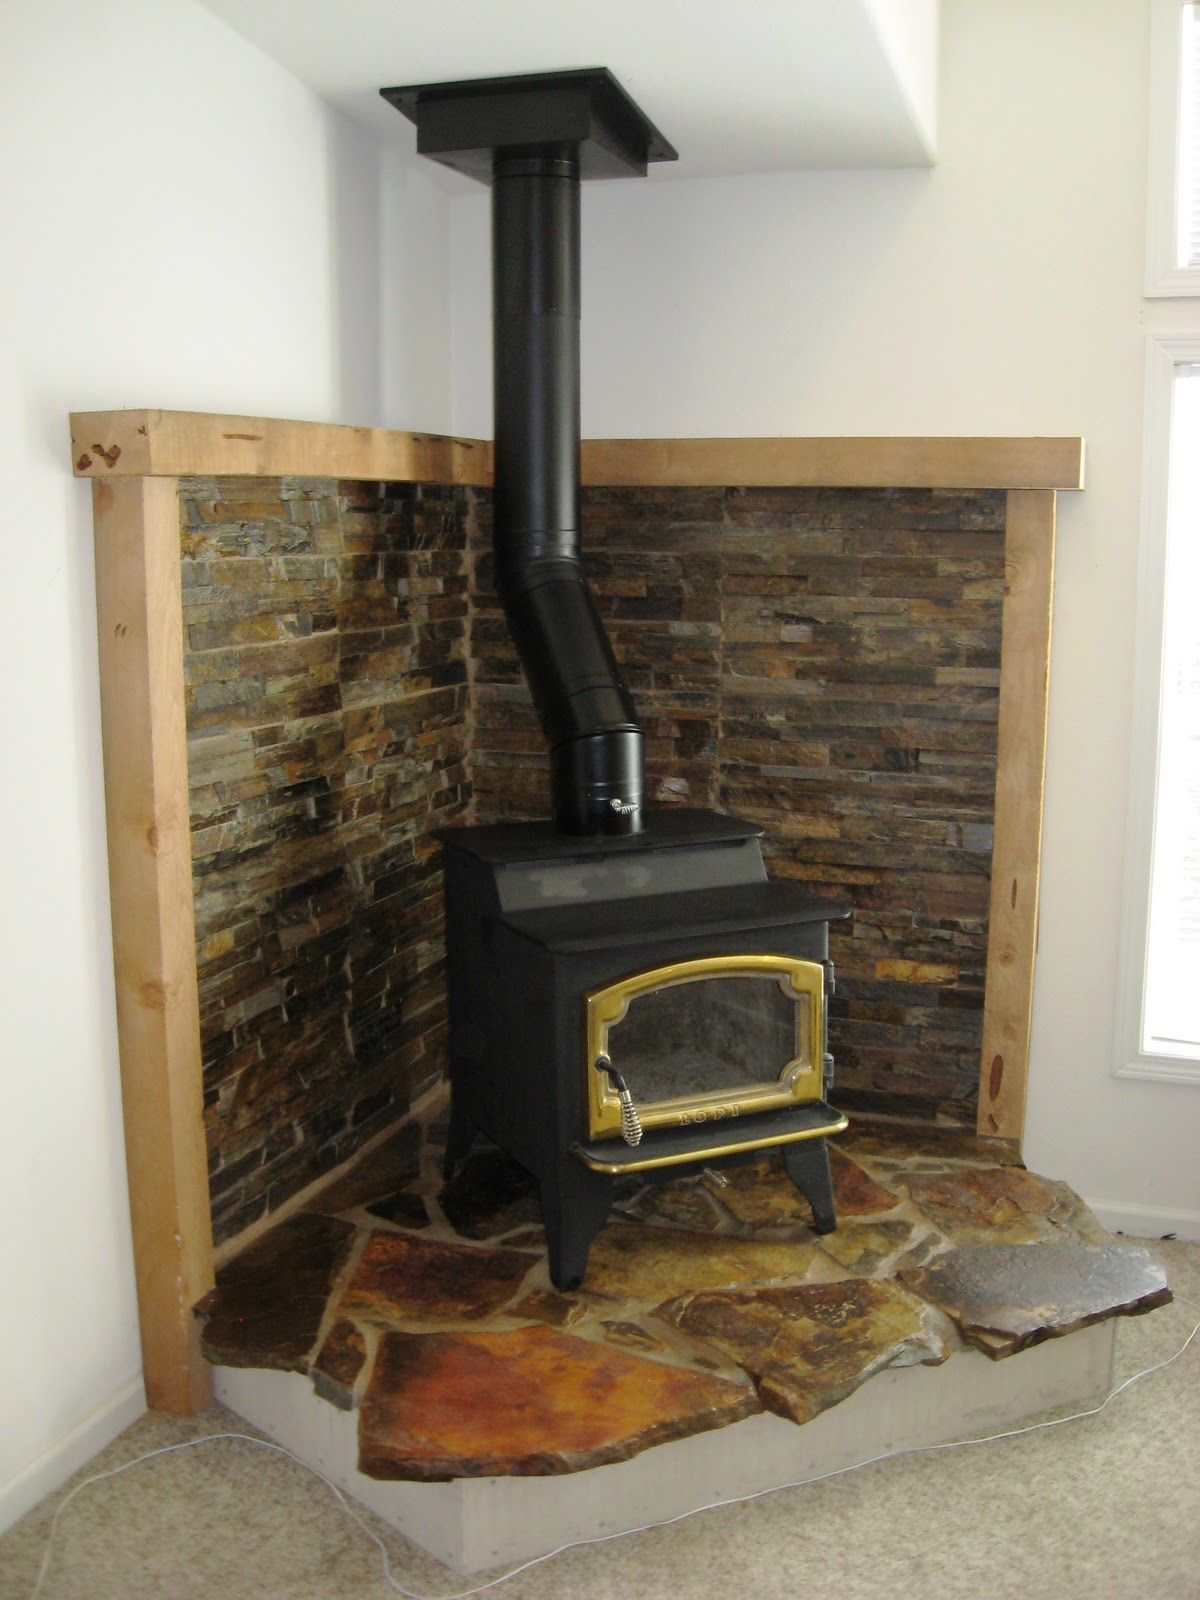 Wood stove surround ideas - Go Back Gallery For Corner Wood Stove Hearth Designs Go Back Gallery For Corner Wood Stove Hearth